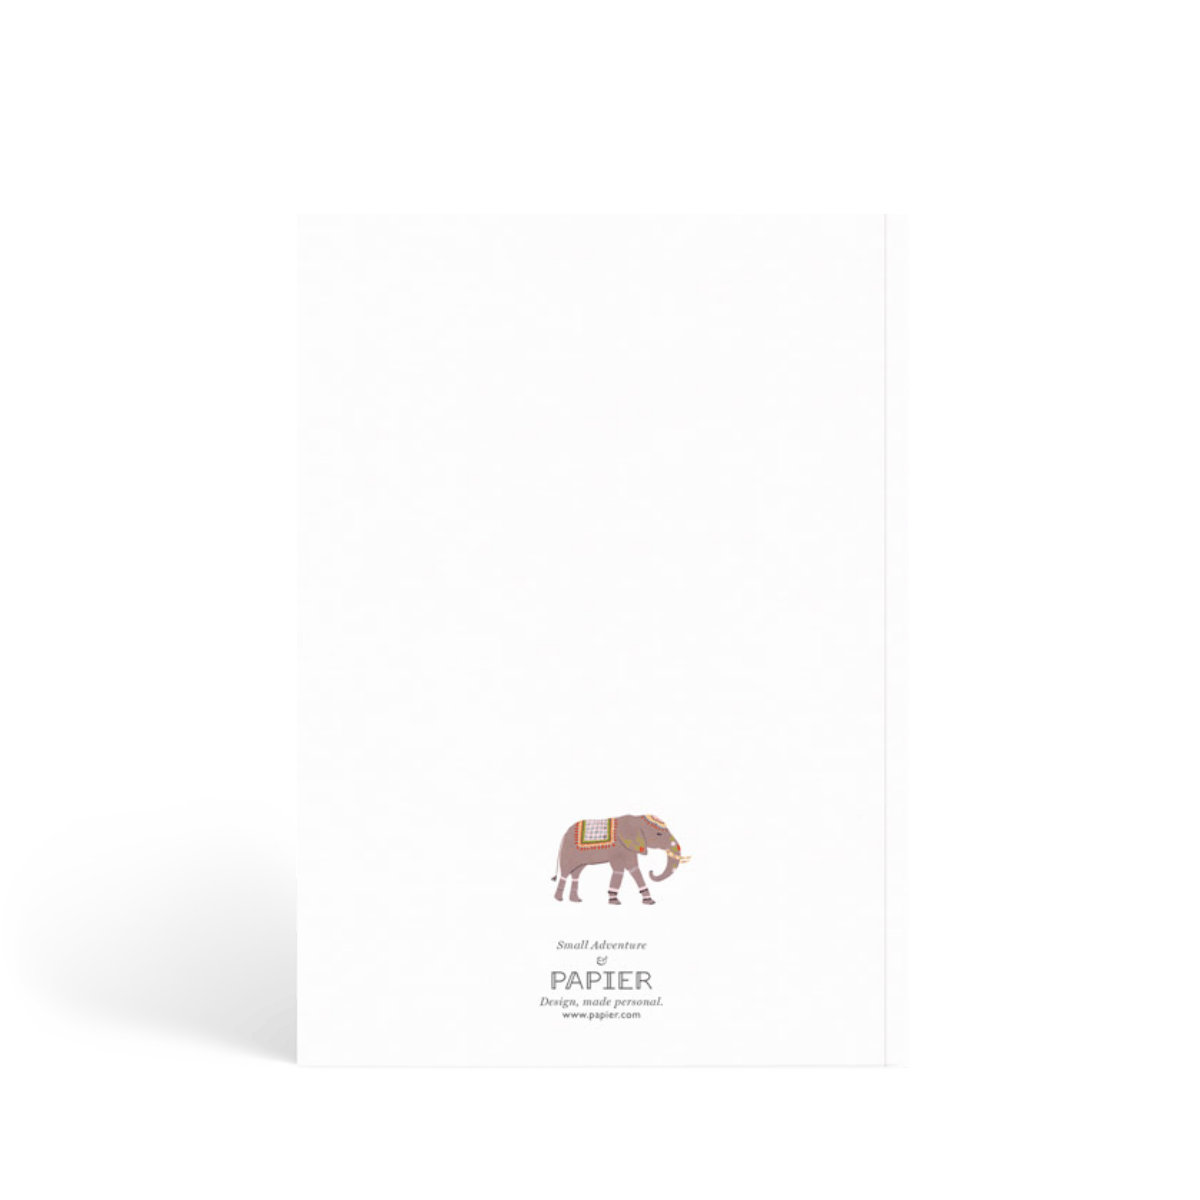 Https%3a%2f%2fwww.papier.com%2fproduct image%2f53824%2f5%2feastern elephant 12961 back 1542114086.png?ixlib=rb 1.1